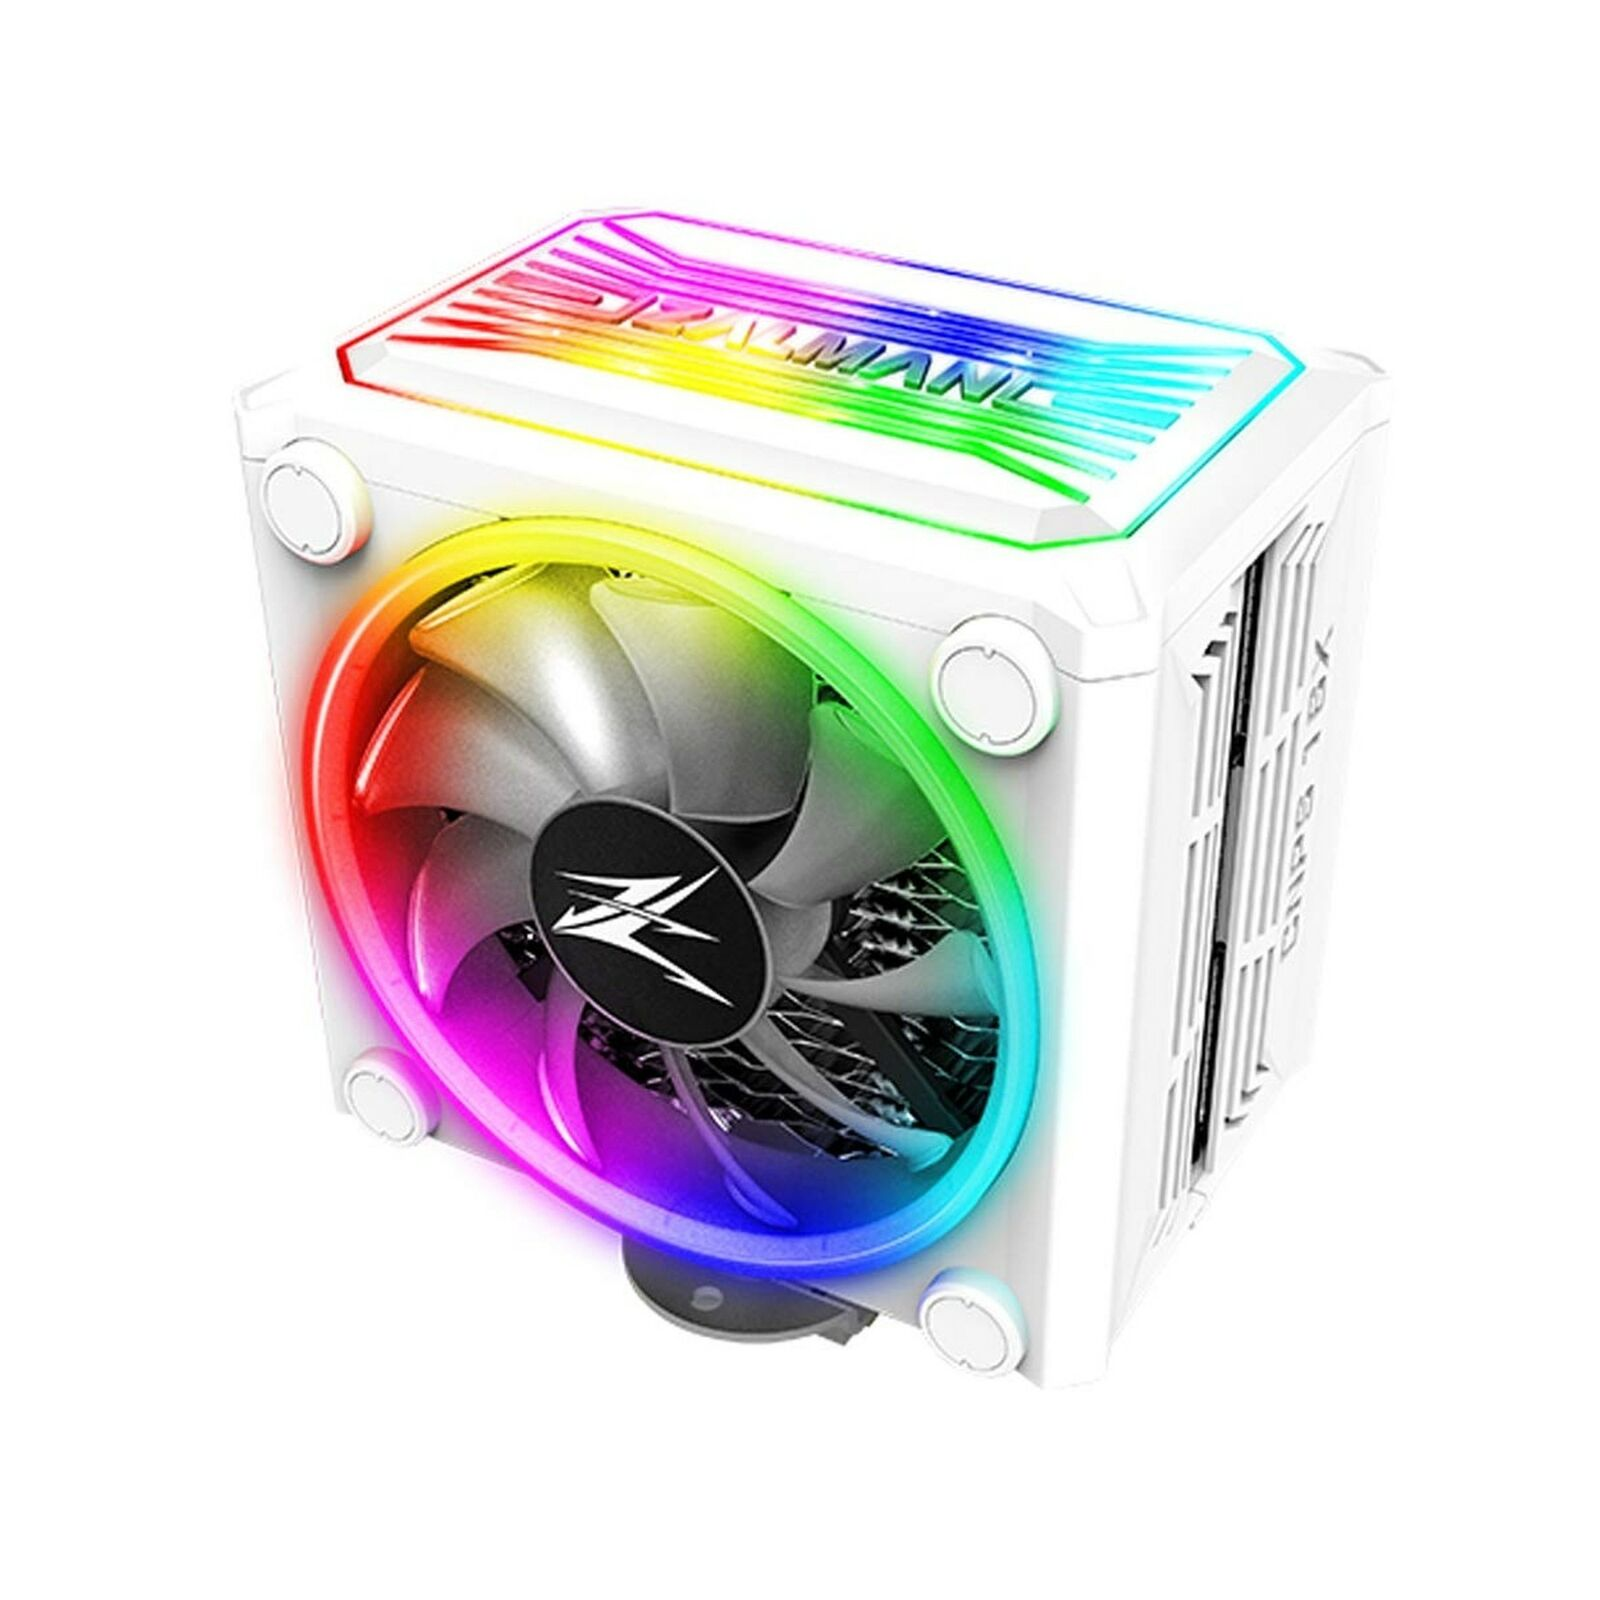 Zalman CNPS 16x, Real aRGB LED CPU Cooler with 4D Patented Corrugated Fin Des...